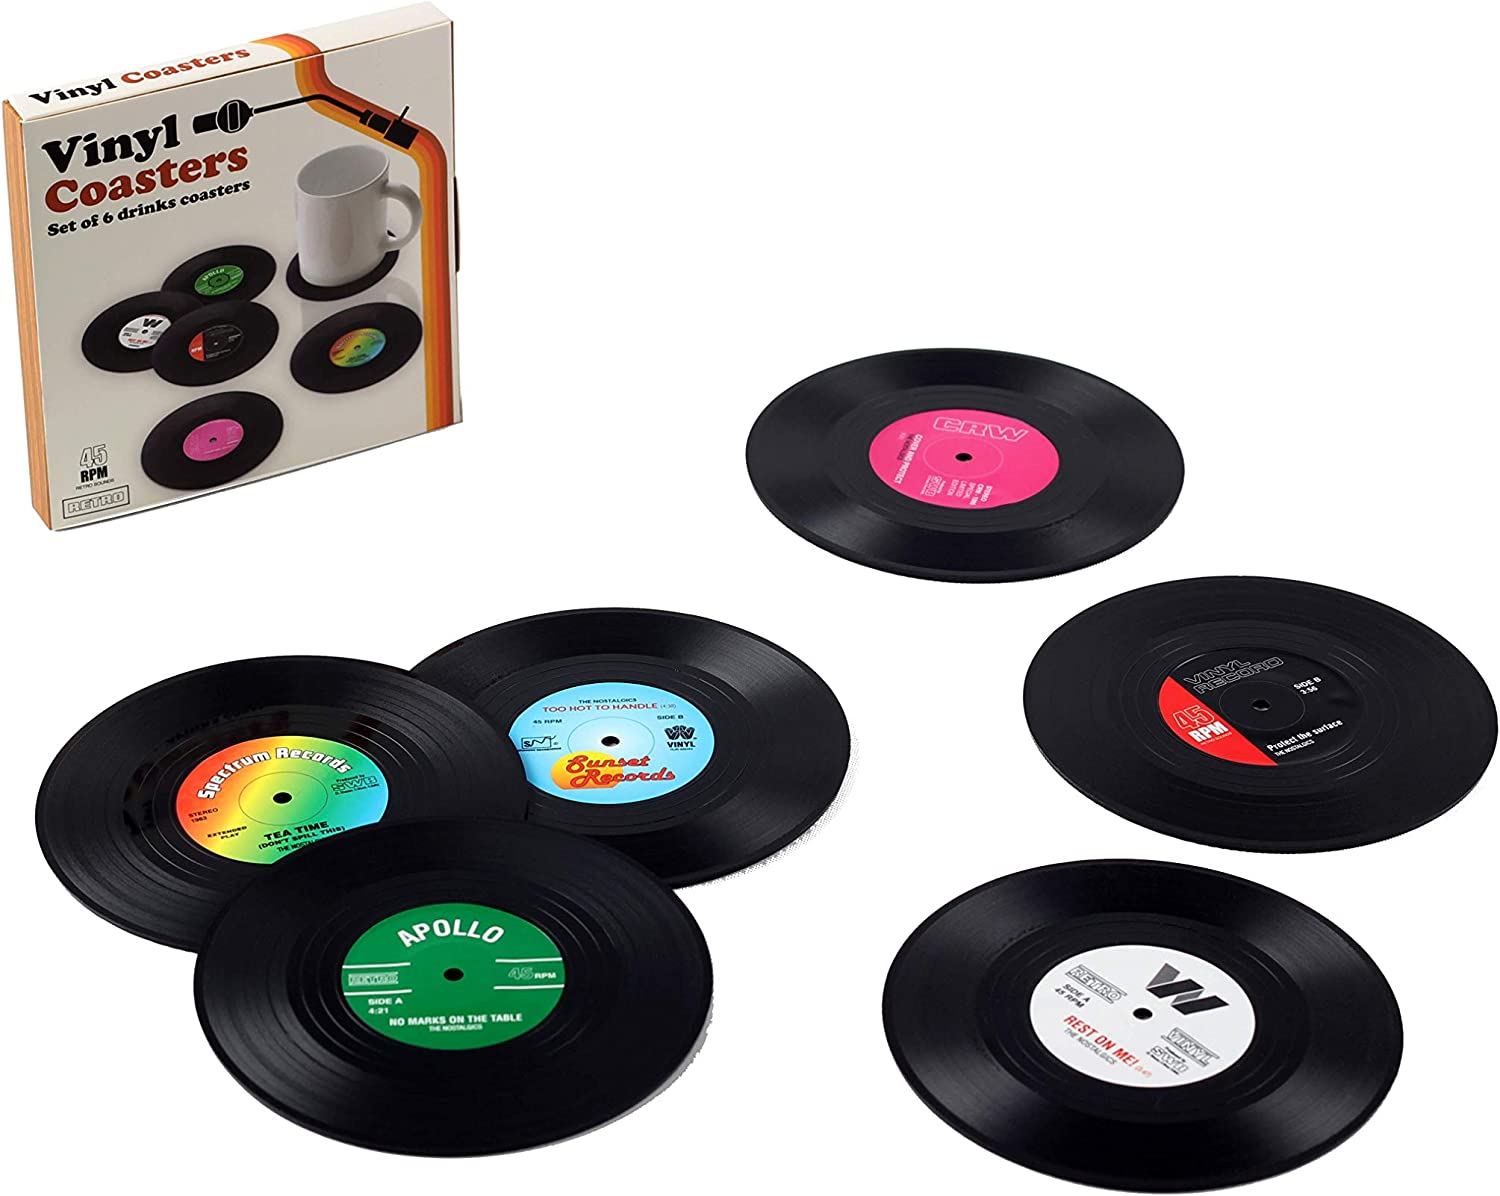 Dvin Vinyl Record Coasters for Drinks Colorful Retro Decoration for Home/Office/Bar Funny House Warming Gift for Music Lovers Set of 6